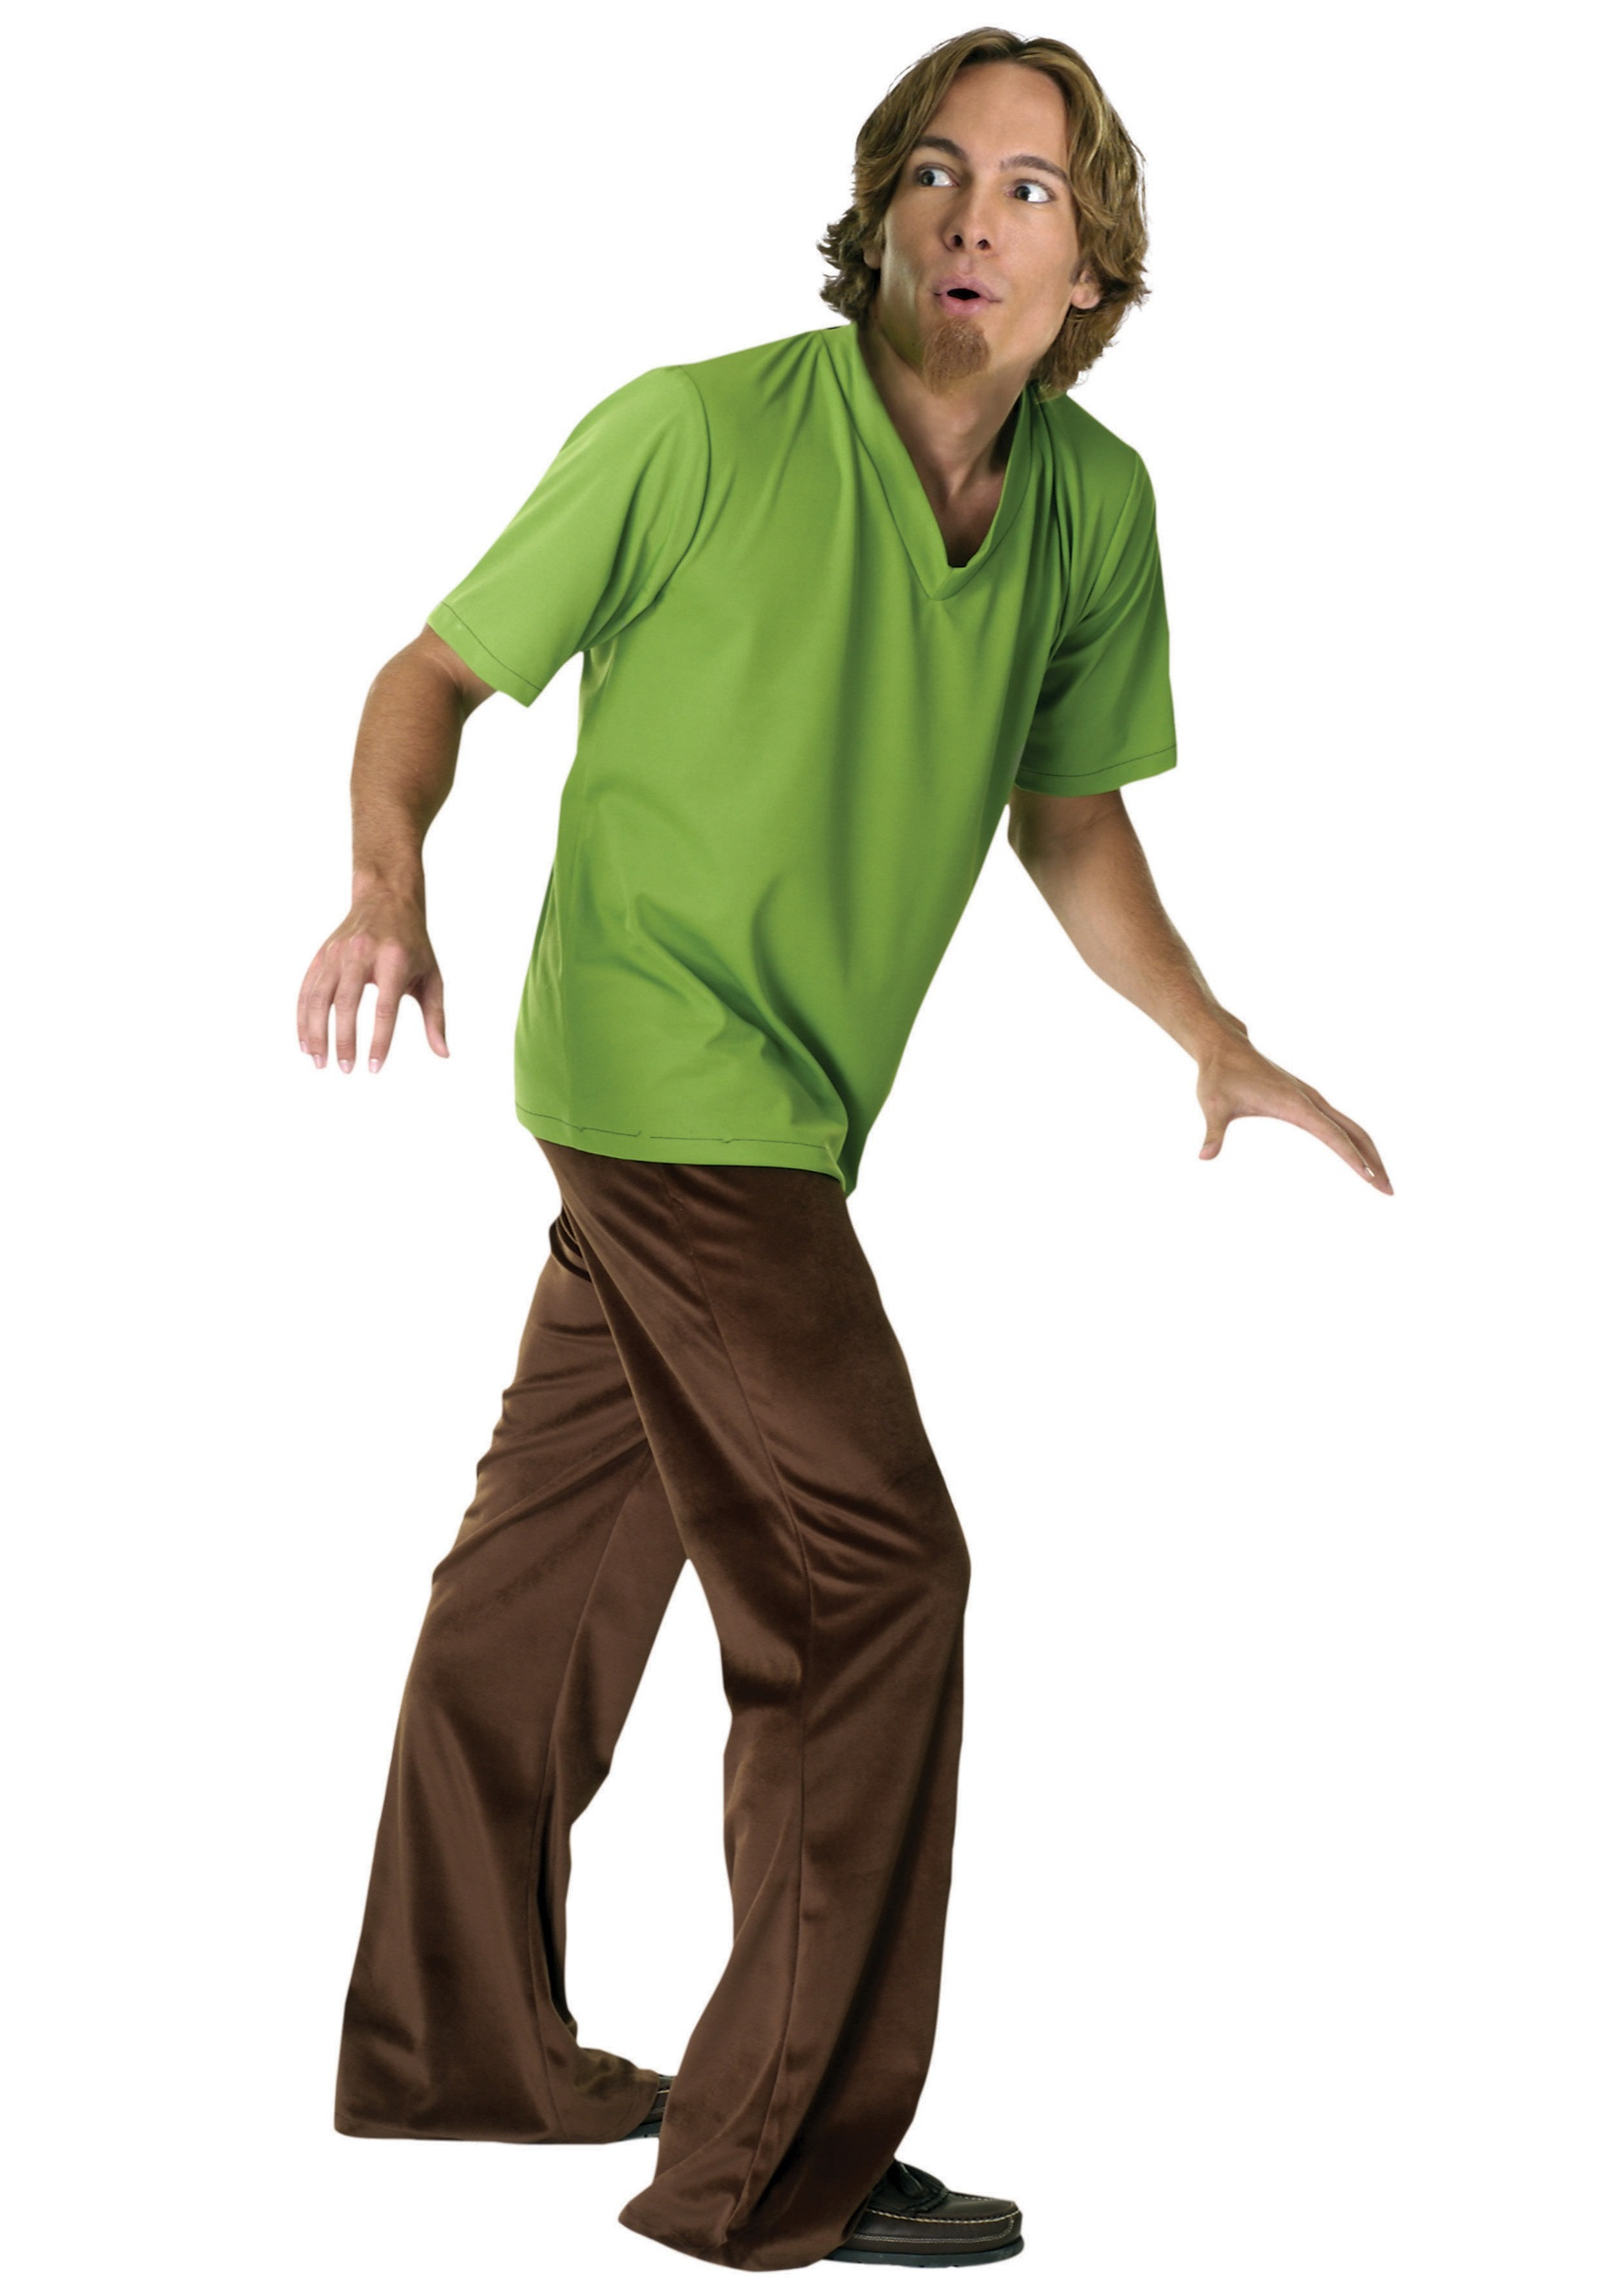 sc 1 st  Halloween Costumes & Adult Shaggy Costume